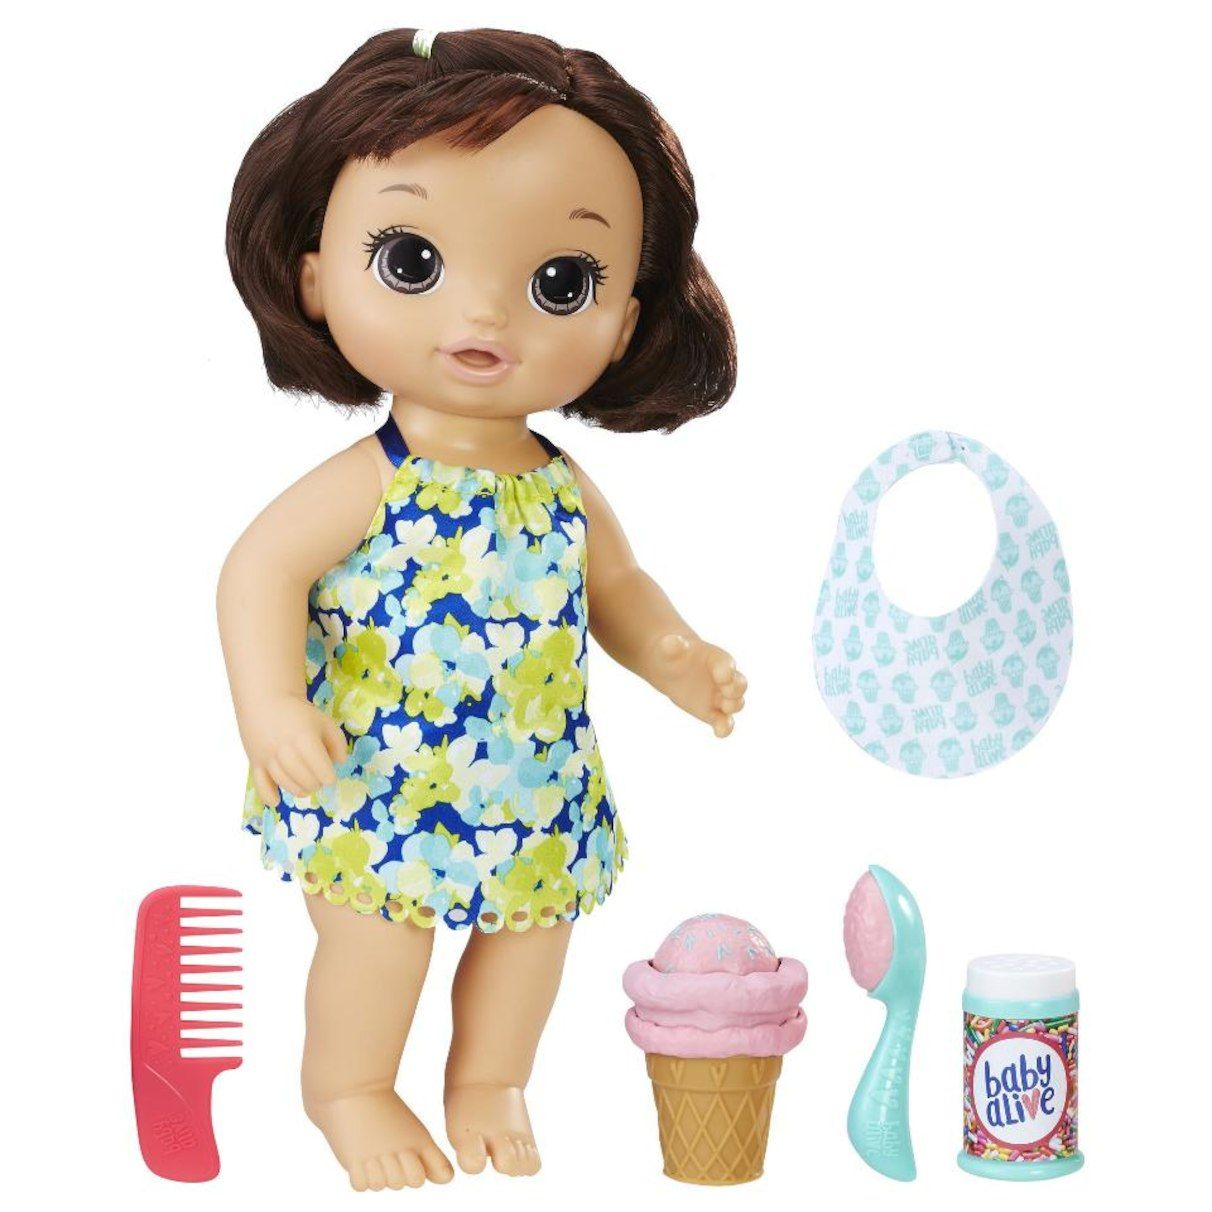 Baby Alive Magical Scoops Baby Doll Brunette Baby Alive Magical Scoops Baby Alive Dolls Baby Alive